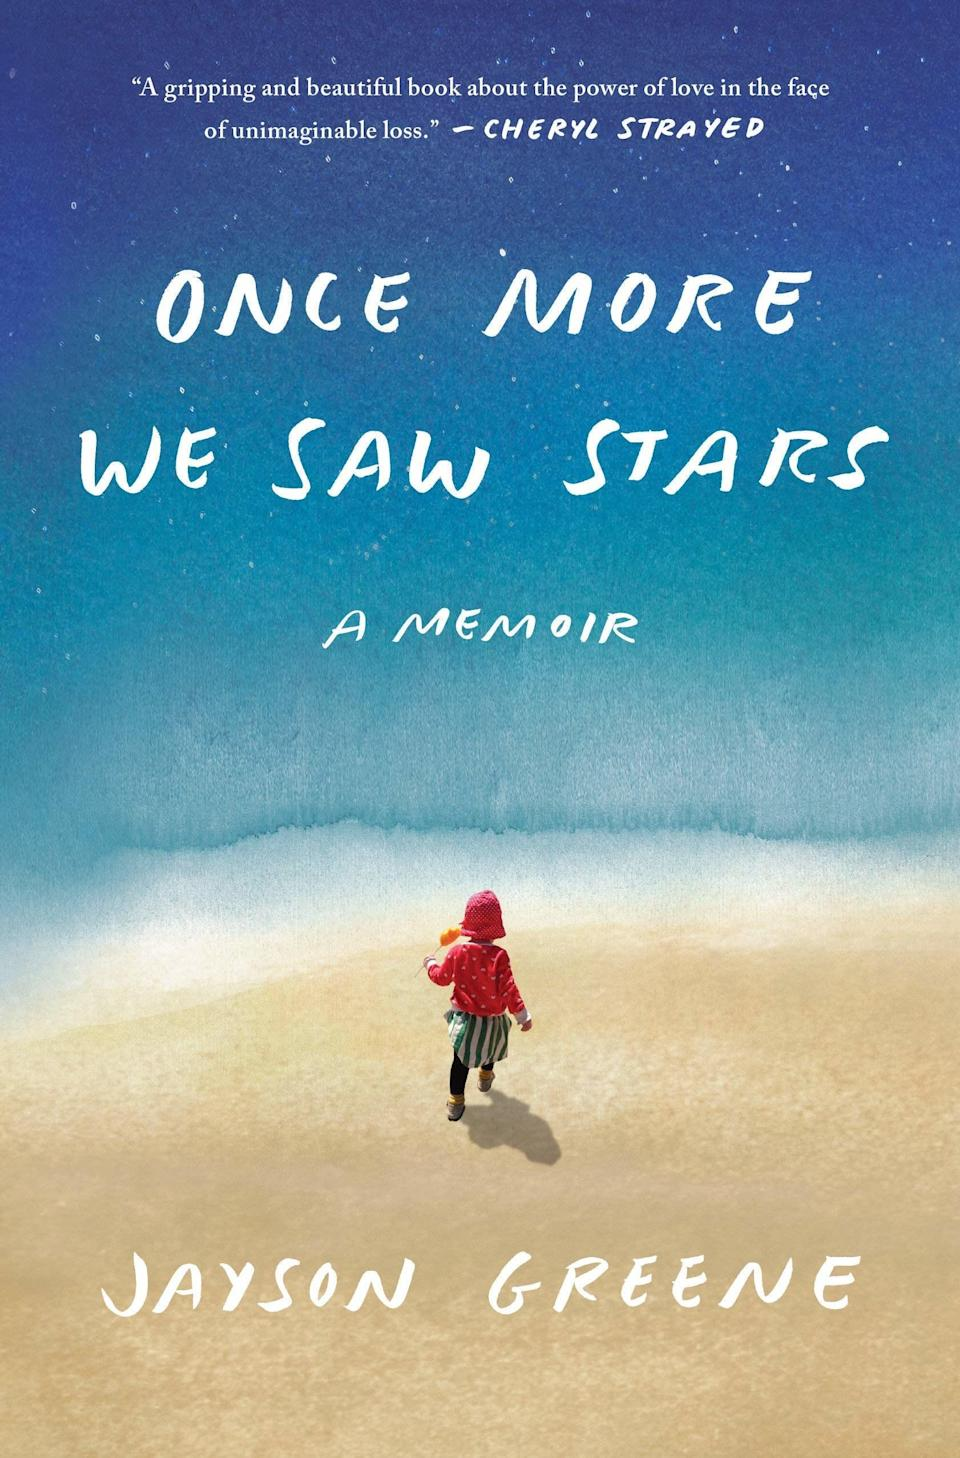 """Disclaimer: This memoir isn't for the faint of heart. In <em>Once More We Saw Stars,</em> Jayson Greene lays bare his story of losing his daughter, Greta. One afternoon Greta, then two, is sitting on a park bench with her grandmother, enjoying her visit and some time outdoors, when out of nowhere, a brick crumbles from a windowsill above and strikes her unconscious. Greta is rushed to the hospital and dies there. This book is an unflinching portrait of what it's like for a couple to live through the worst kind of trauma—and survive. It belongs in the pantheon with other masterpieces on grief, like Joan Didion's <em><a href=""""https://www.amazon.com/Year-Magical-Thinking-Joan-Didion/dp/1400078431/ref=sr_1_1?crid=9OSUUH9F326S&keywords=the%20year%20of%20magical%20thinking&qid=1557766585&s=gateway&sprefix=the%20year%20of%20ma,aps,126&sr=8-1"""" rel=""""nofollow noopener"""" target=""""_blank"""" data-ylk=""""slk:The Year of Magical Thinking"""" class=""""link rapid-noclick-resp"""">The Year of Magical Thinking</a>.</em>"""